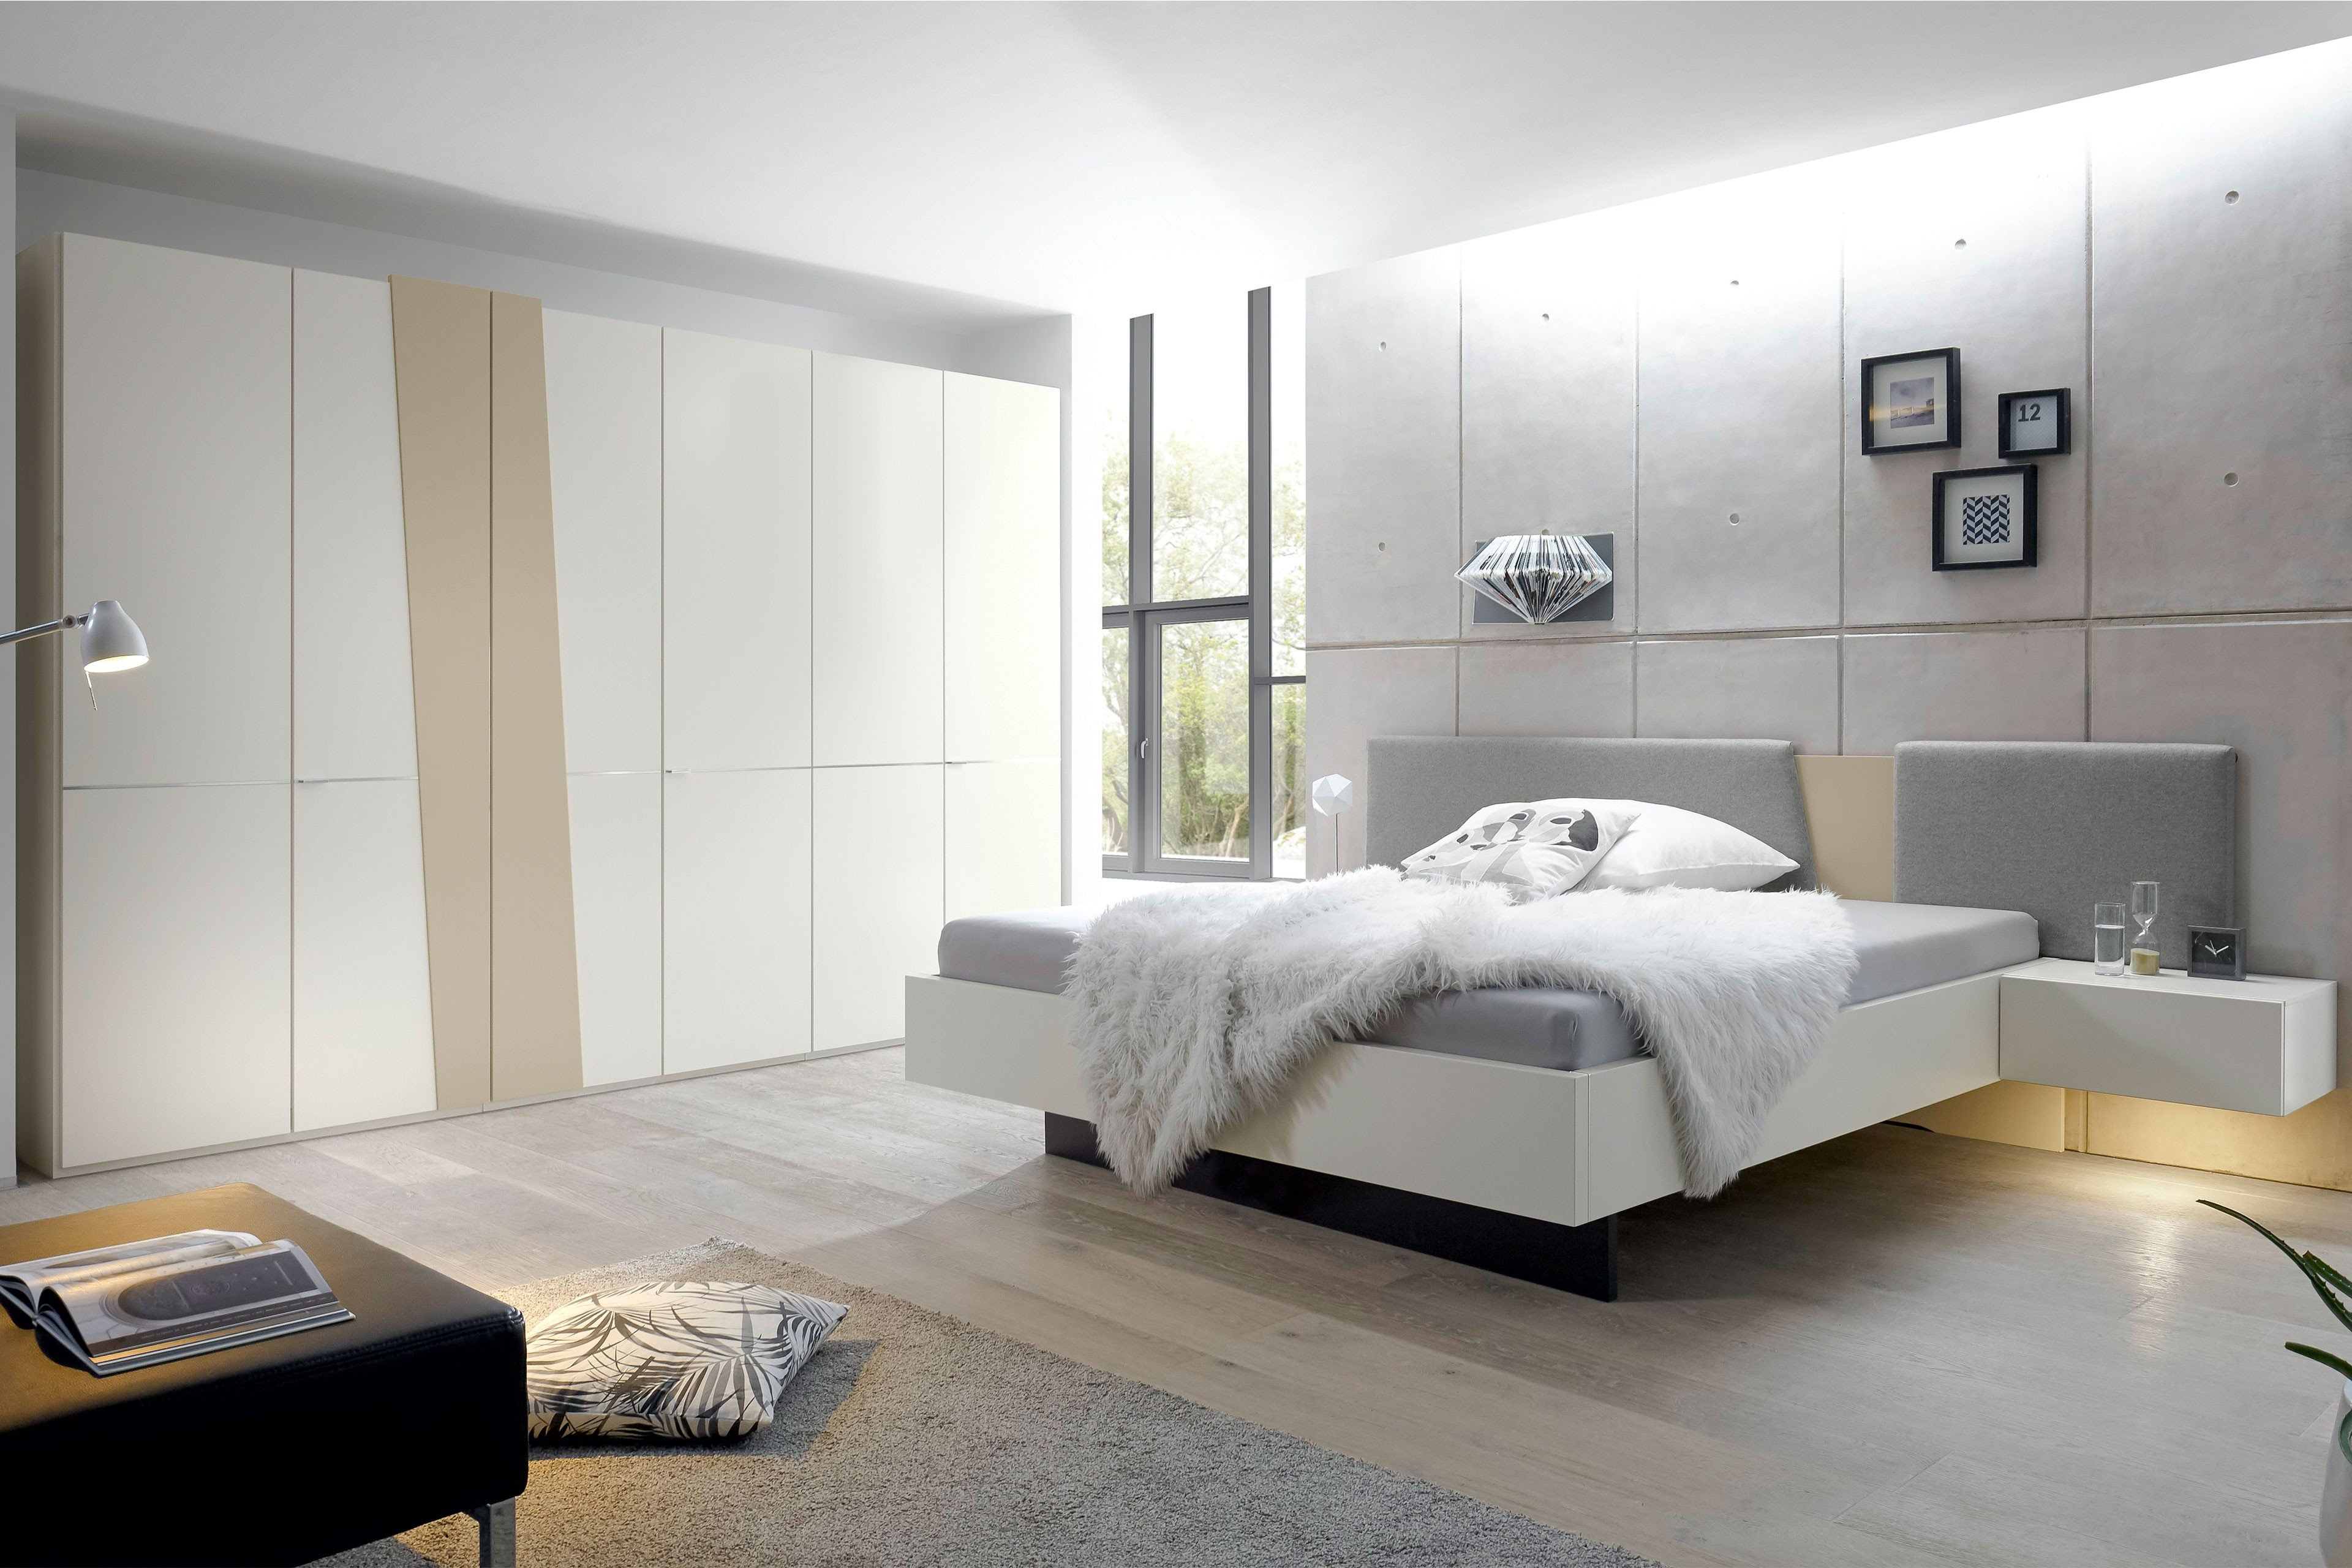 loddenkemper schlafzimmer set s ash wei m bel letz ihr online shop. Black Bedroom Furniture Sets. Home Design Ideas